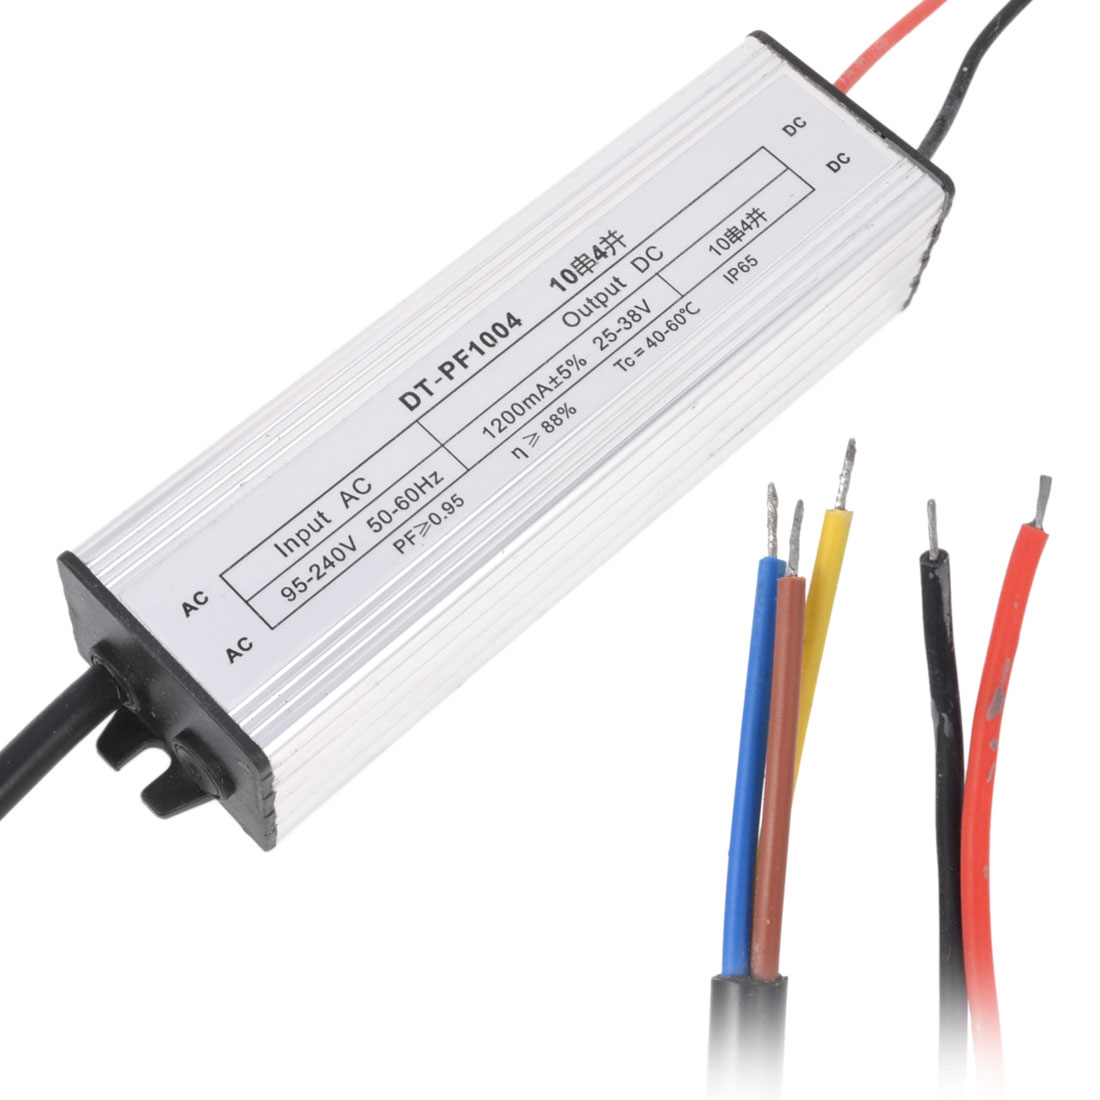 AC 95-240V to DC 25-38V Waterproof LED Driver Transformer Adapter 40W